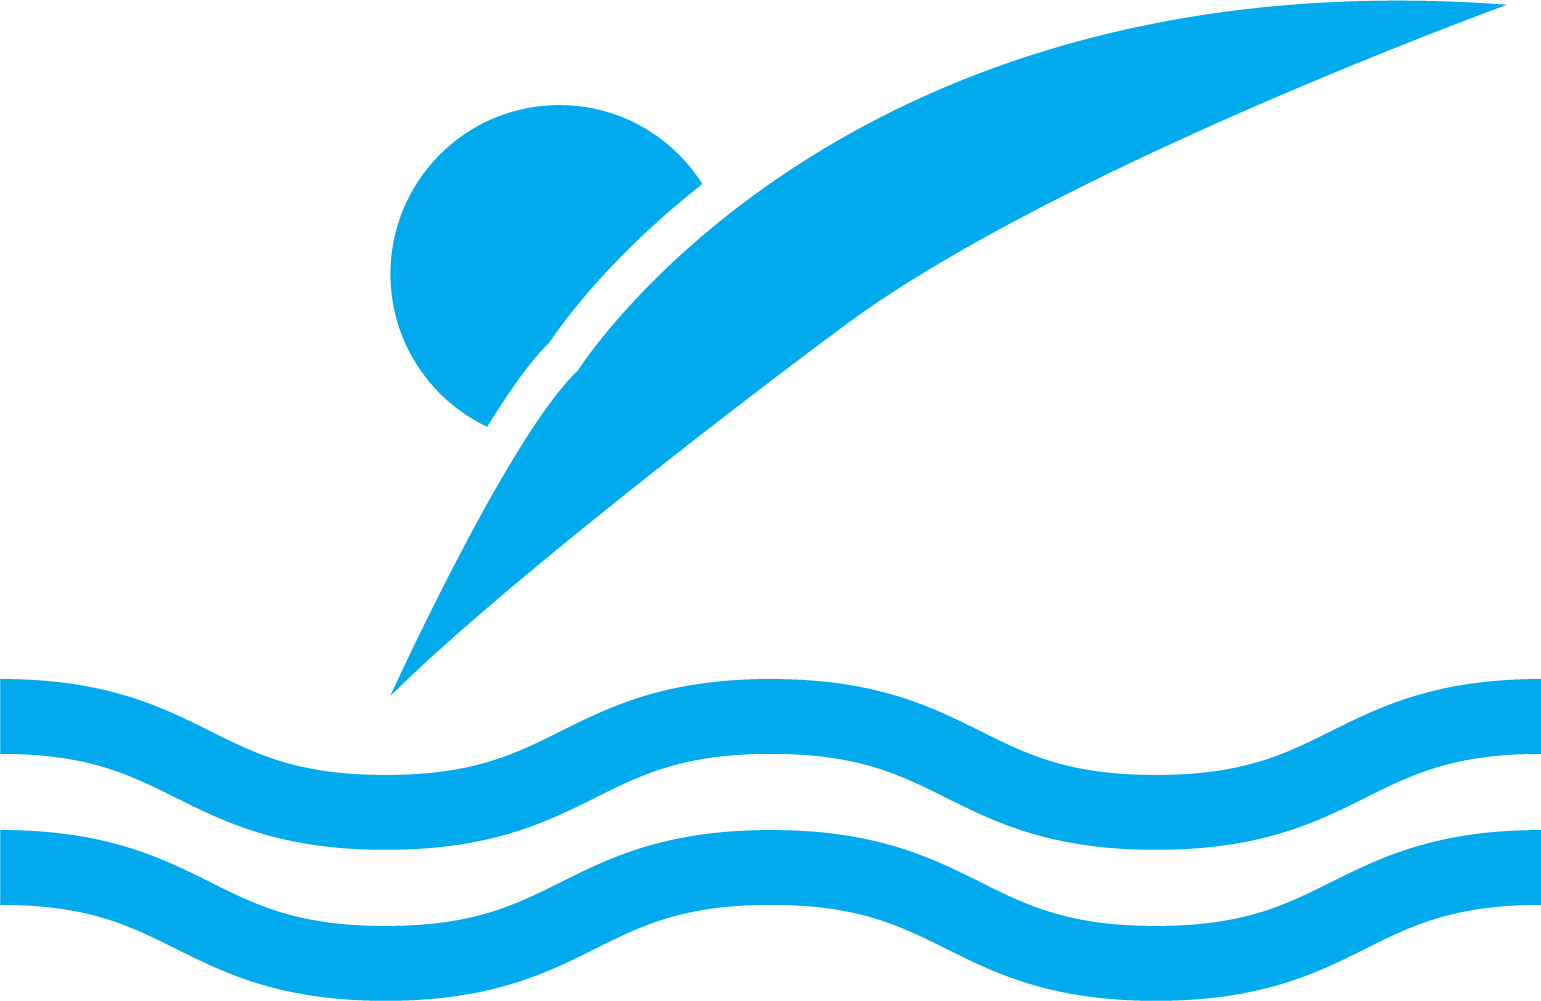 Swimming clipart wave.